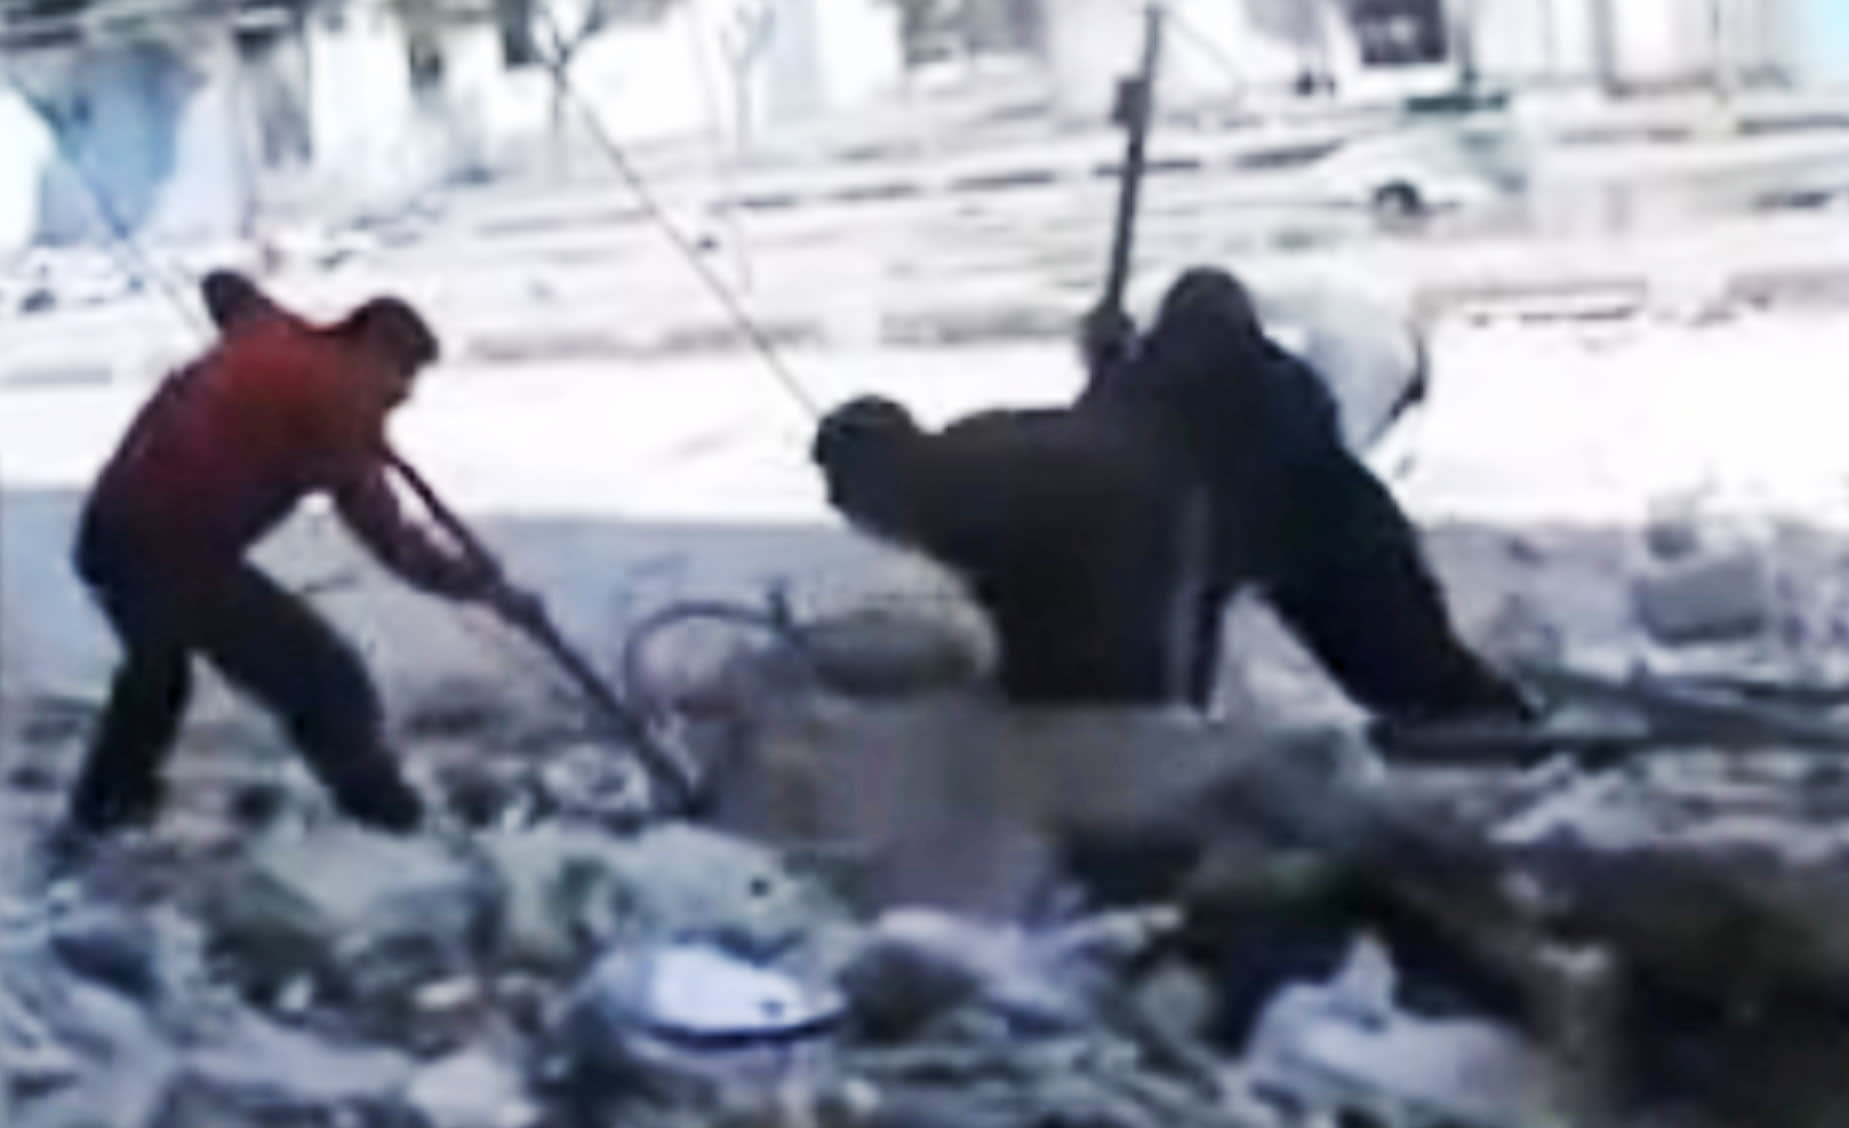 This image made from amateur video and released by the Syria media center Friday, March 23, 2012, purports to show Syrians pulling out the body of a man under the rubble of a building that was bombed in Homs, Syria. Syrian President Bashar Assad says he will spare no effort to make the mission of U.N.-Arab League envoy Kofi Annan a success but he demands that armed opponents commit to halting violence. (AP Photo/Syria Media Center via APTN) THE ASSOCIATED PRESS CANNOT INDEPENDENTLY VERIFY THE CONTENT, DATE, LOCATION OR AUTHENTICITY OF THIS MATERIAL. TV OUT